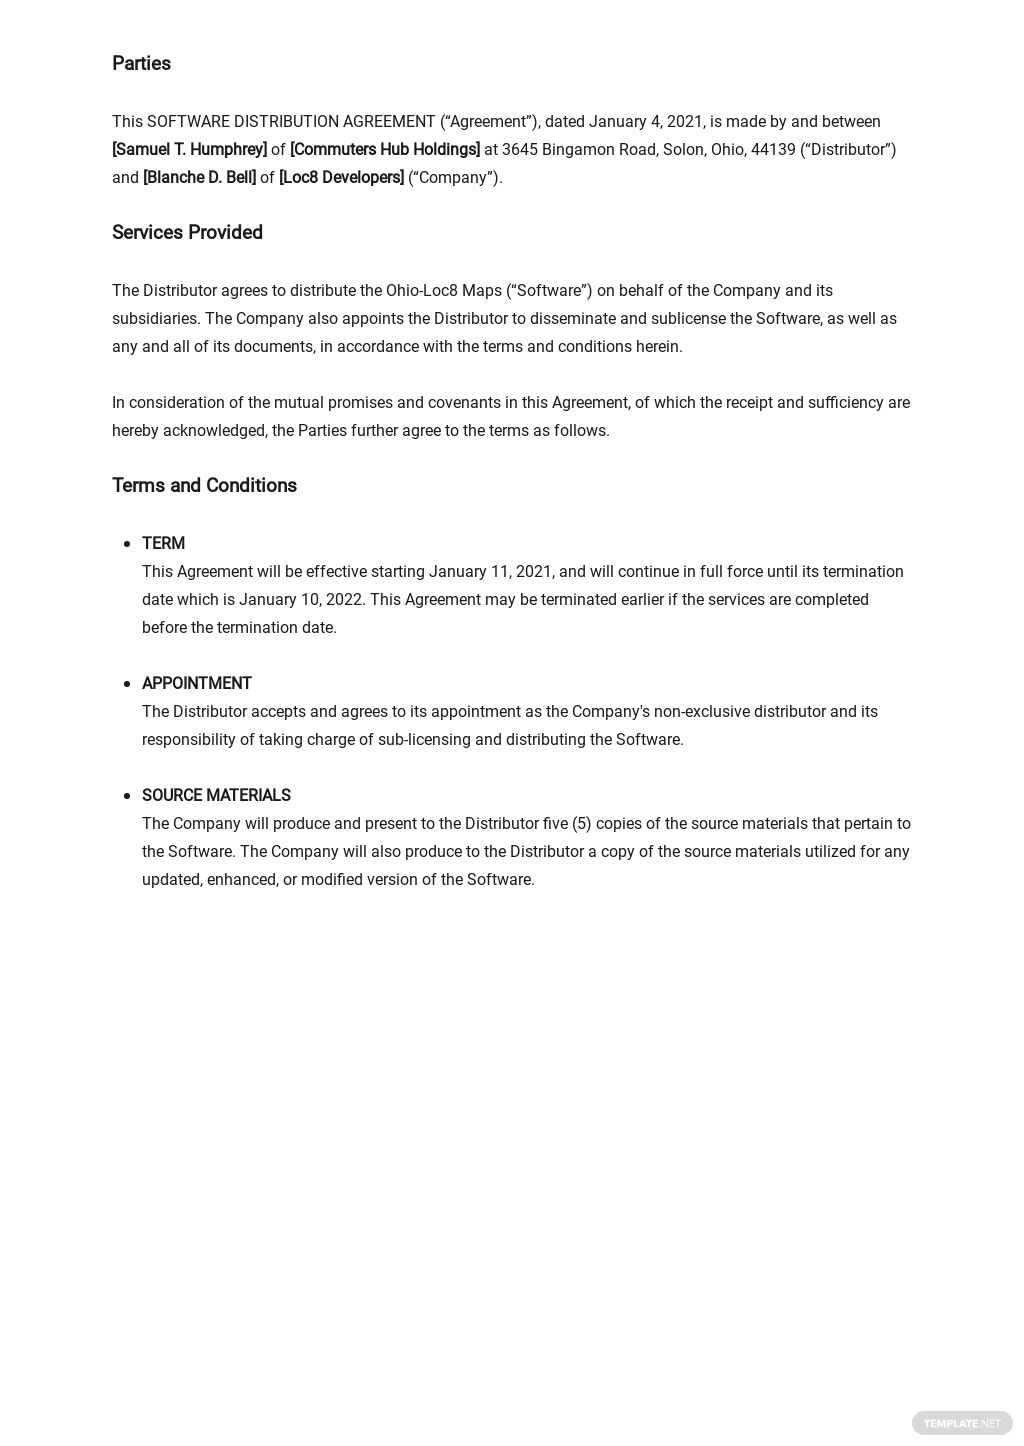 Software Distribution Agreement Long Form Template  1.jpe